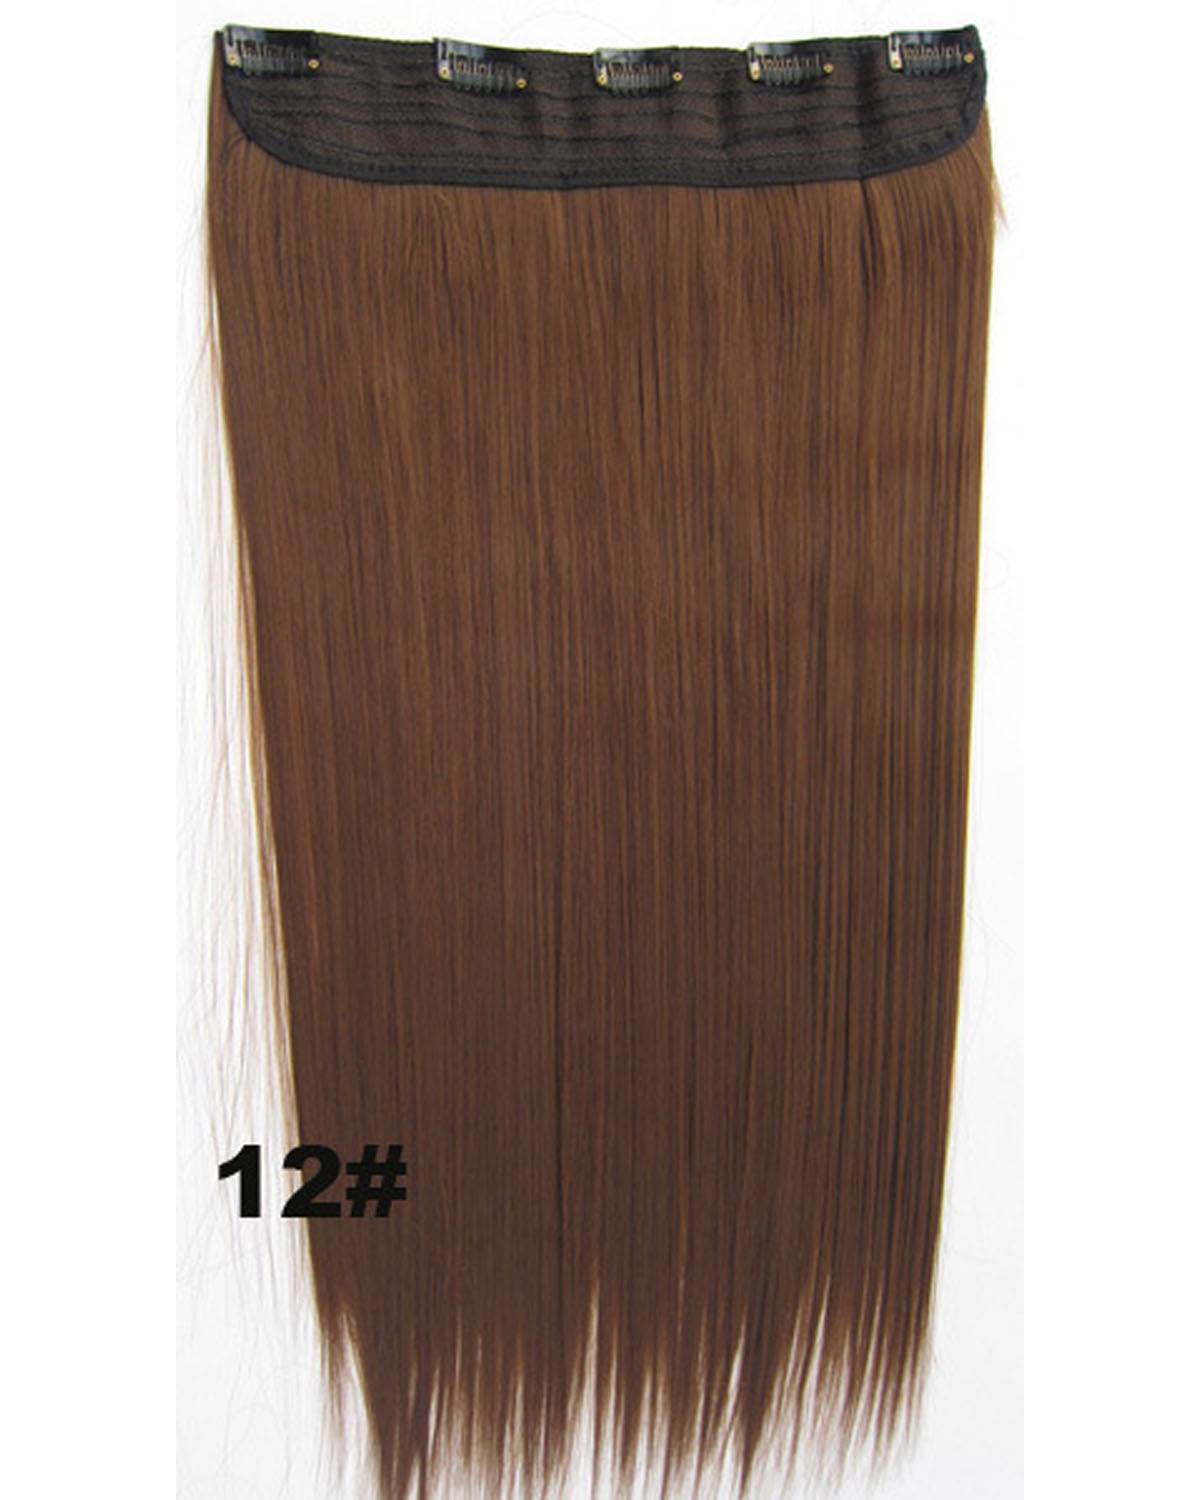 24 Inch Female Elegant Long and Straight Hot-Sale One Piece 5 Clips Clip in Synthetic Hair Extension12#